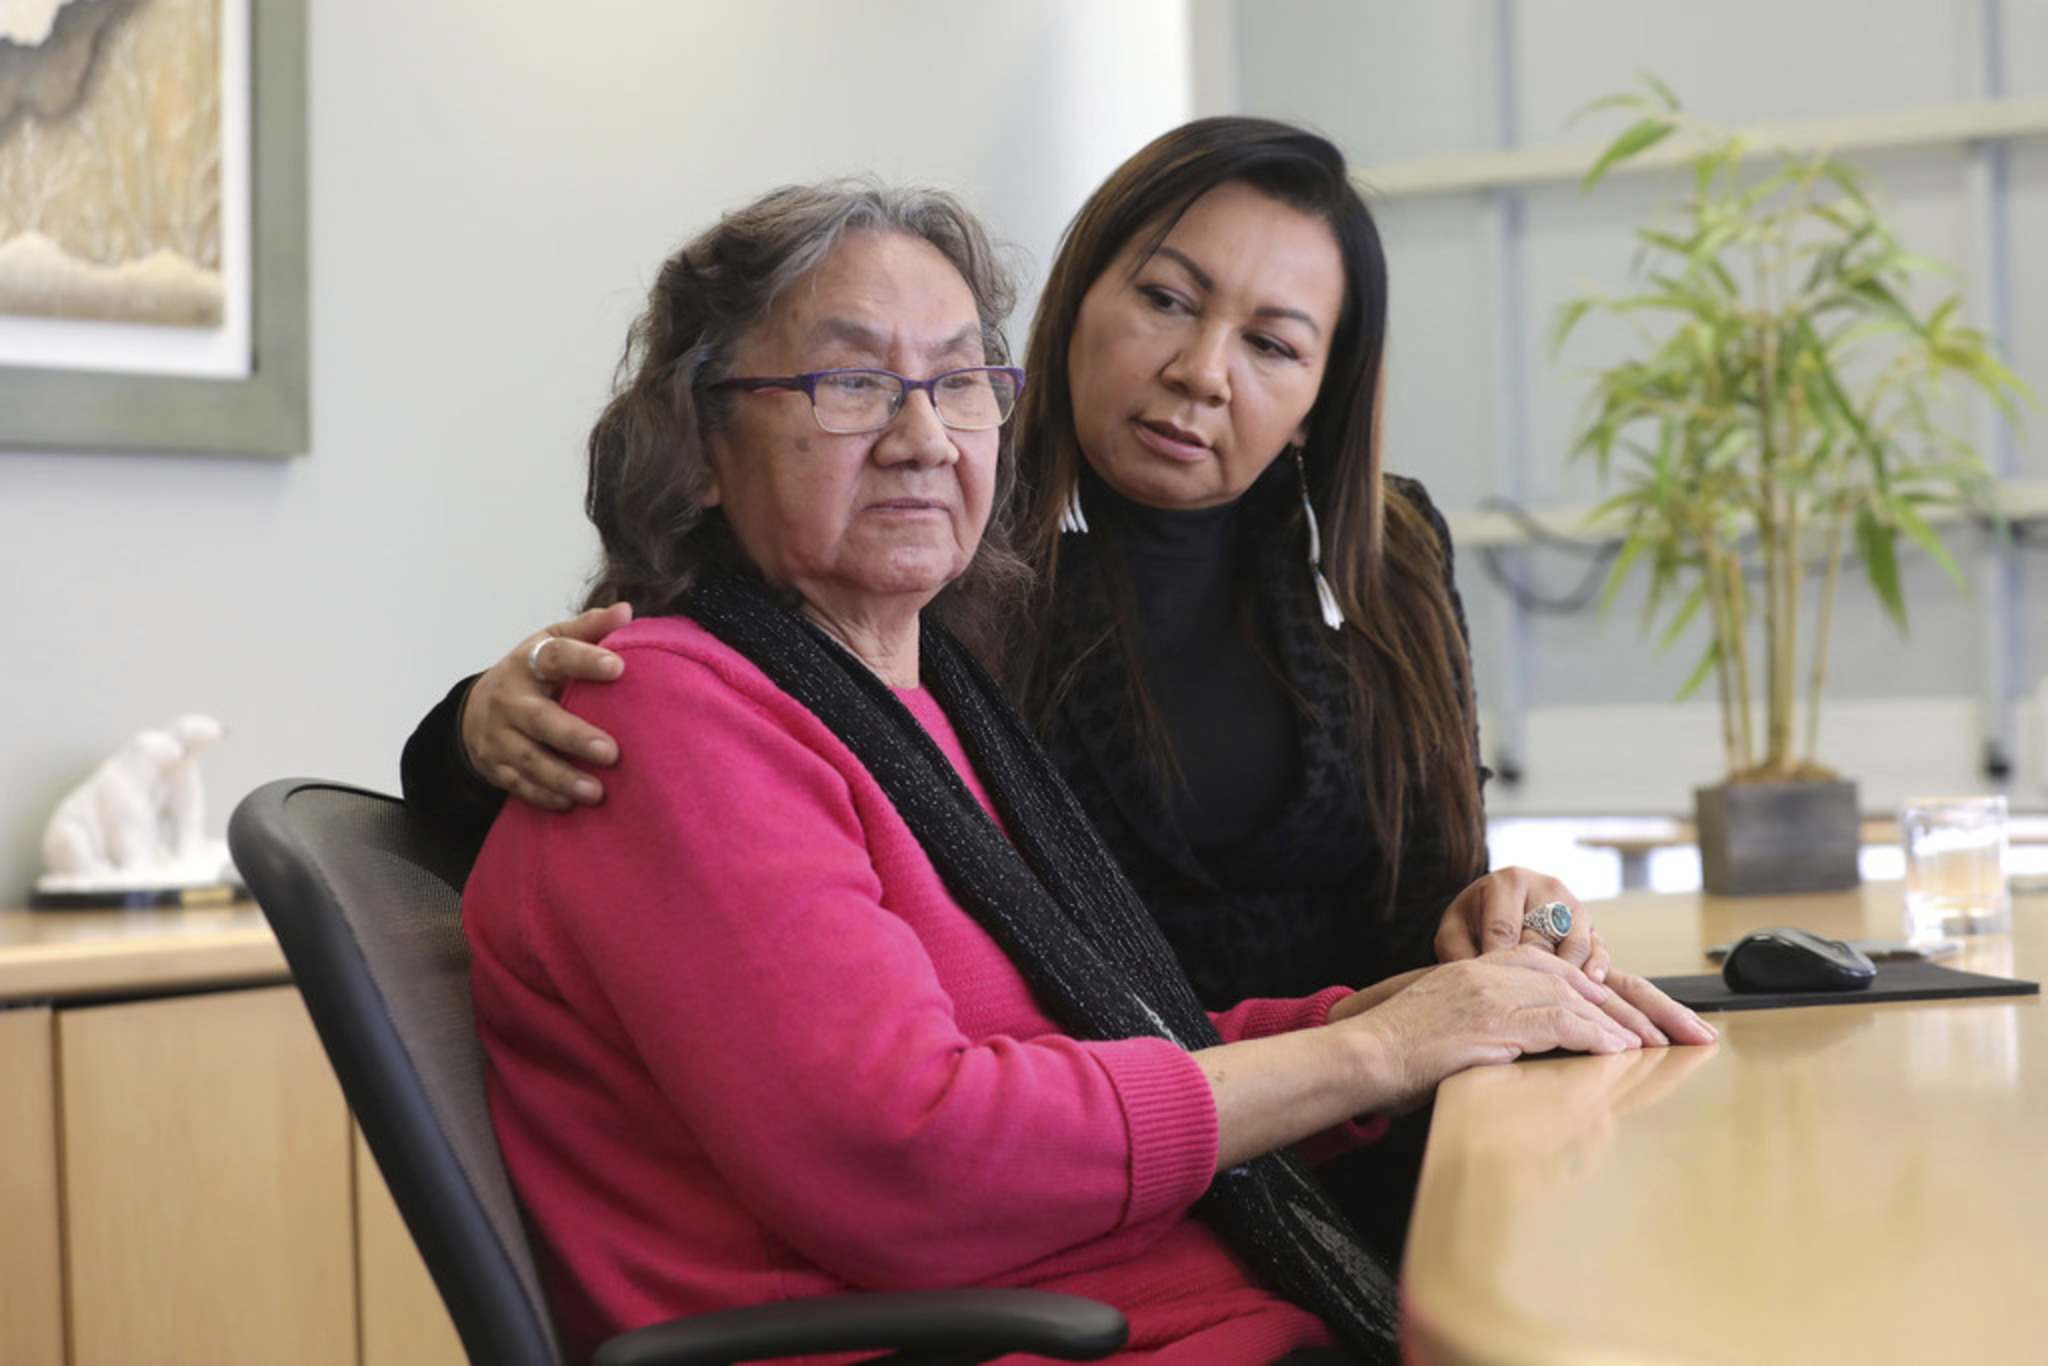 RUTH BONNEVILLE / WINNIPEG FREE PRESS</p><p>Bunibonibee Elder, Sadie North, left, shared her experience with racism at a Winnipeg emergency room and hospital with her daughter, Sheila North, at her side at a press conference Friday.</p>